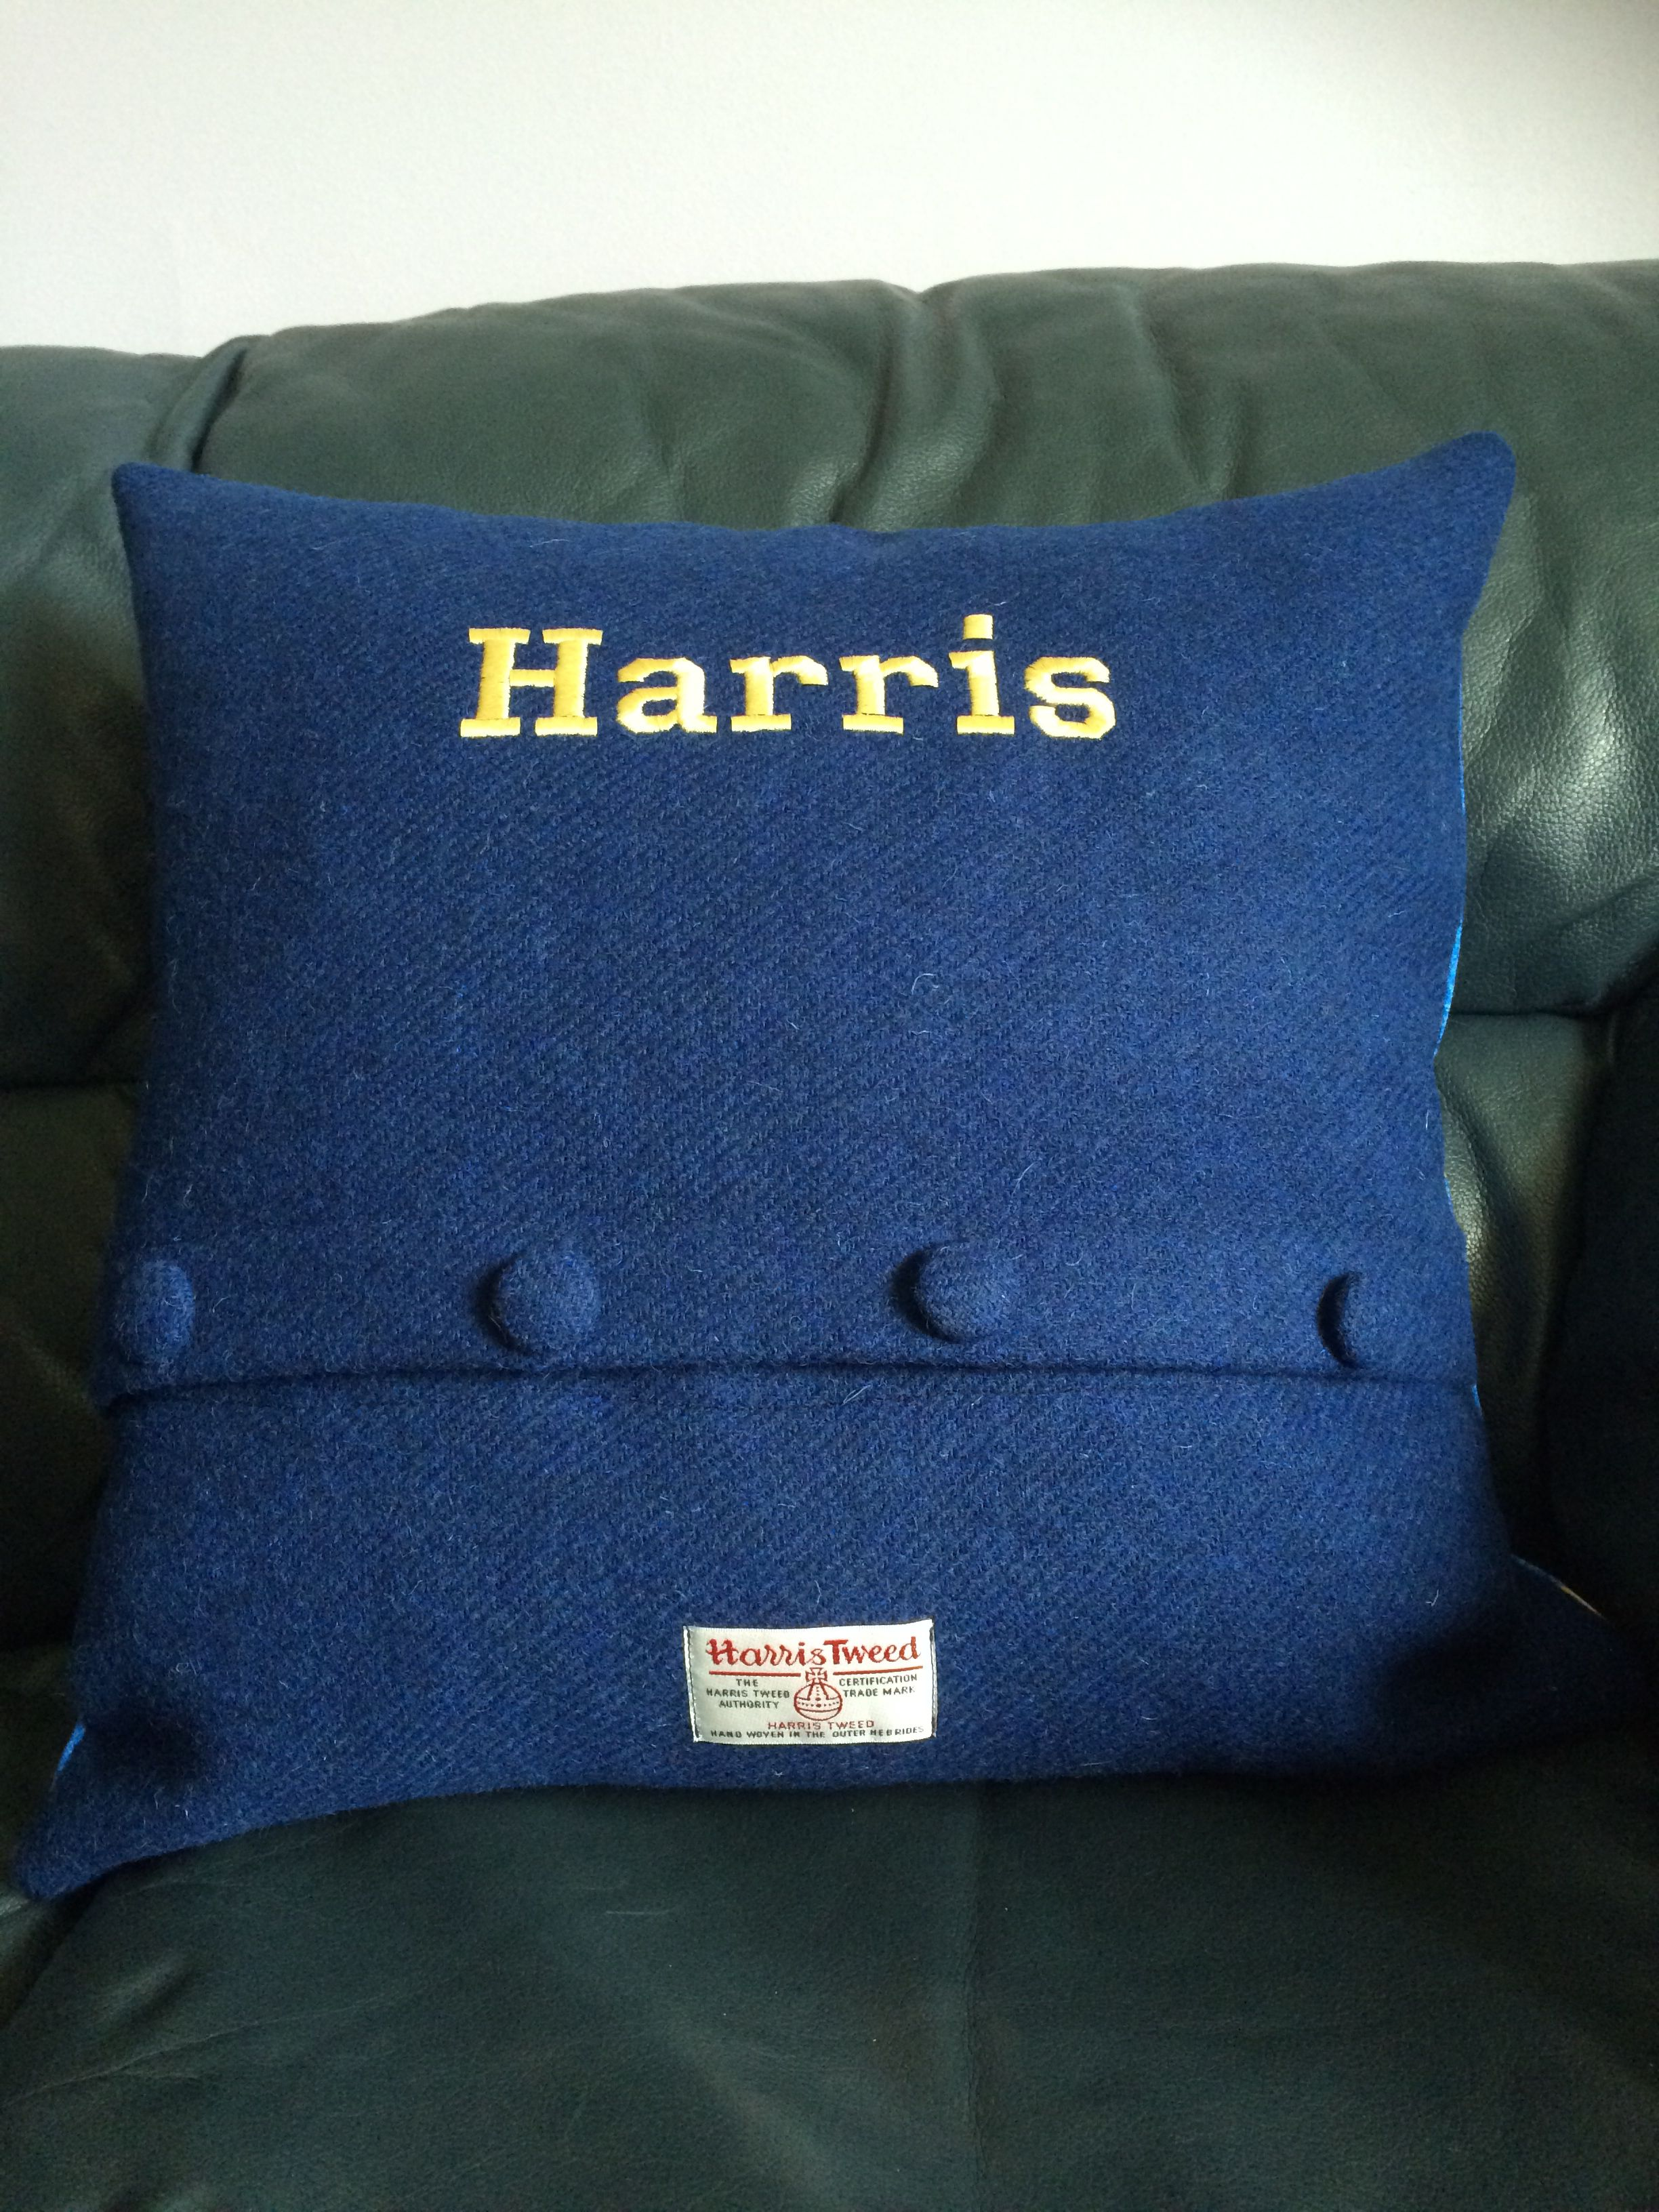 Harris tweed cushion for a little boy called Harris